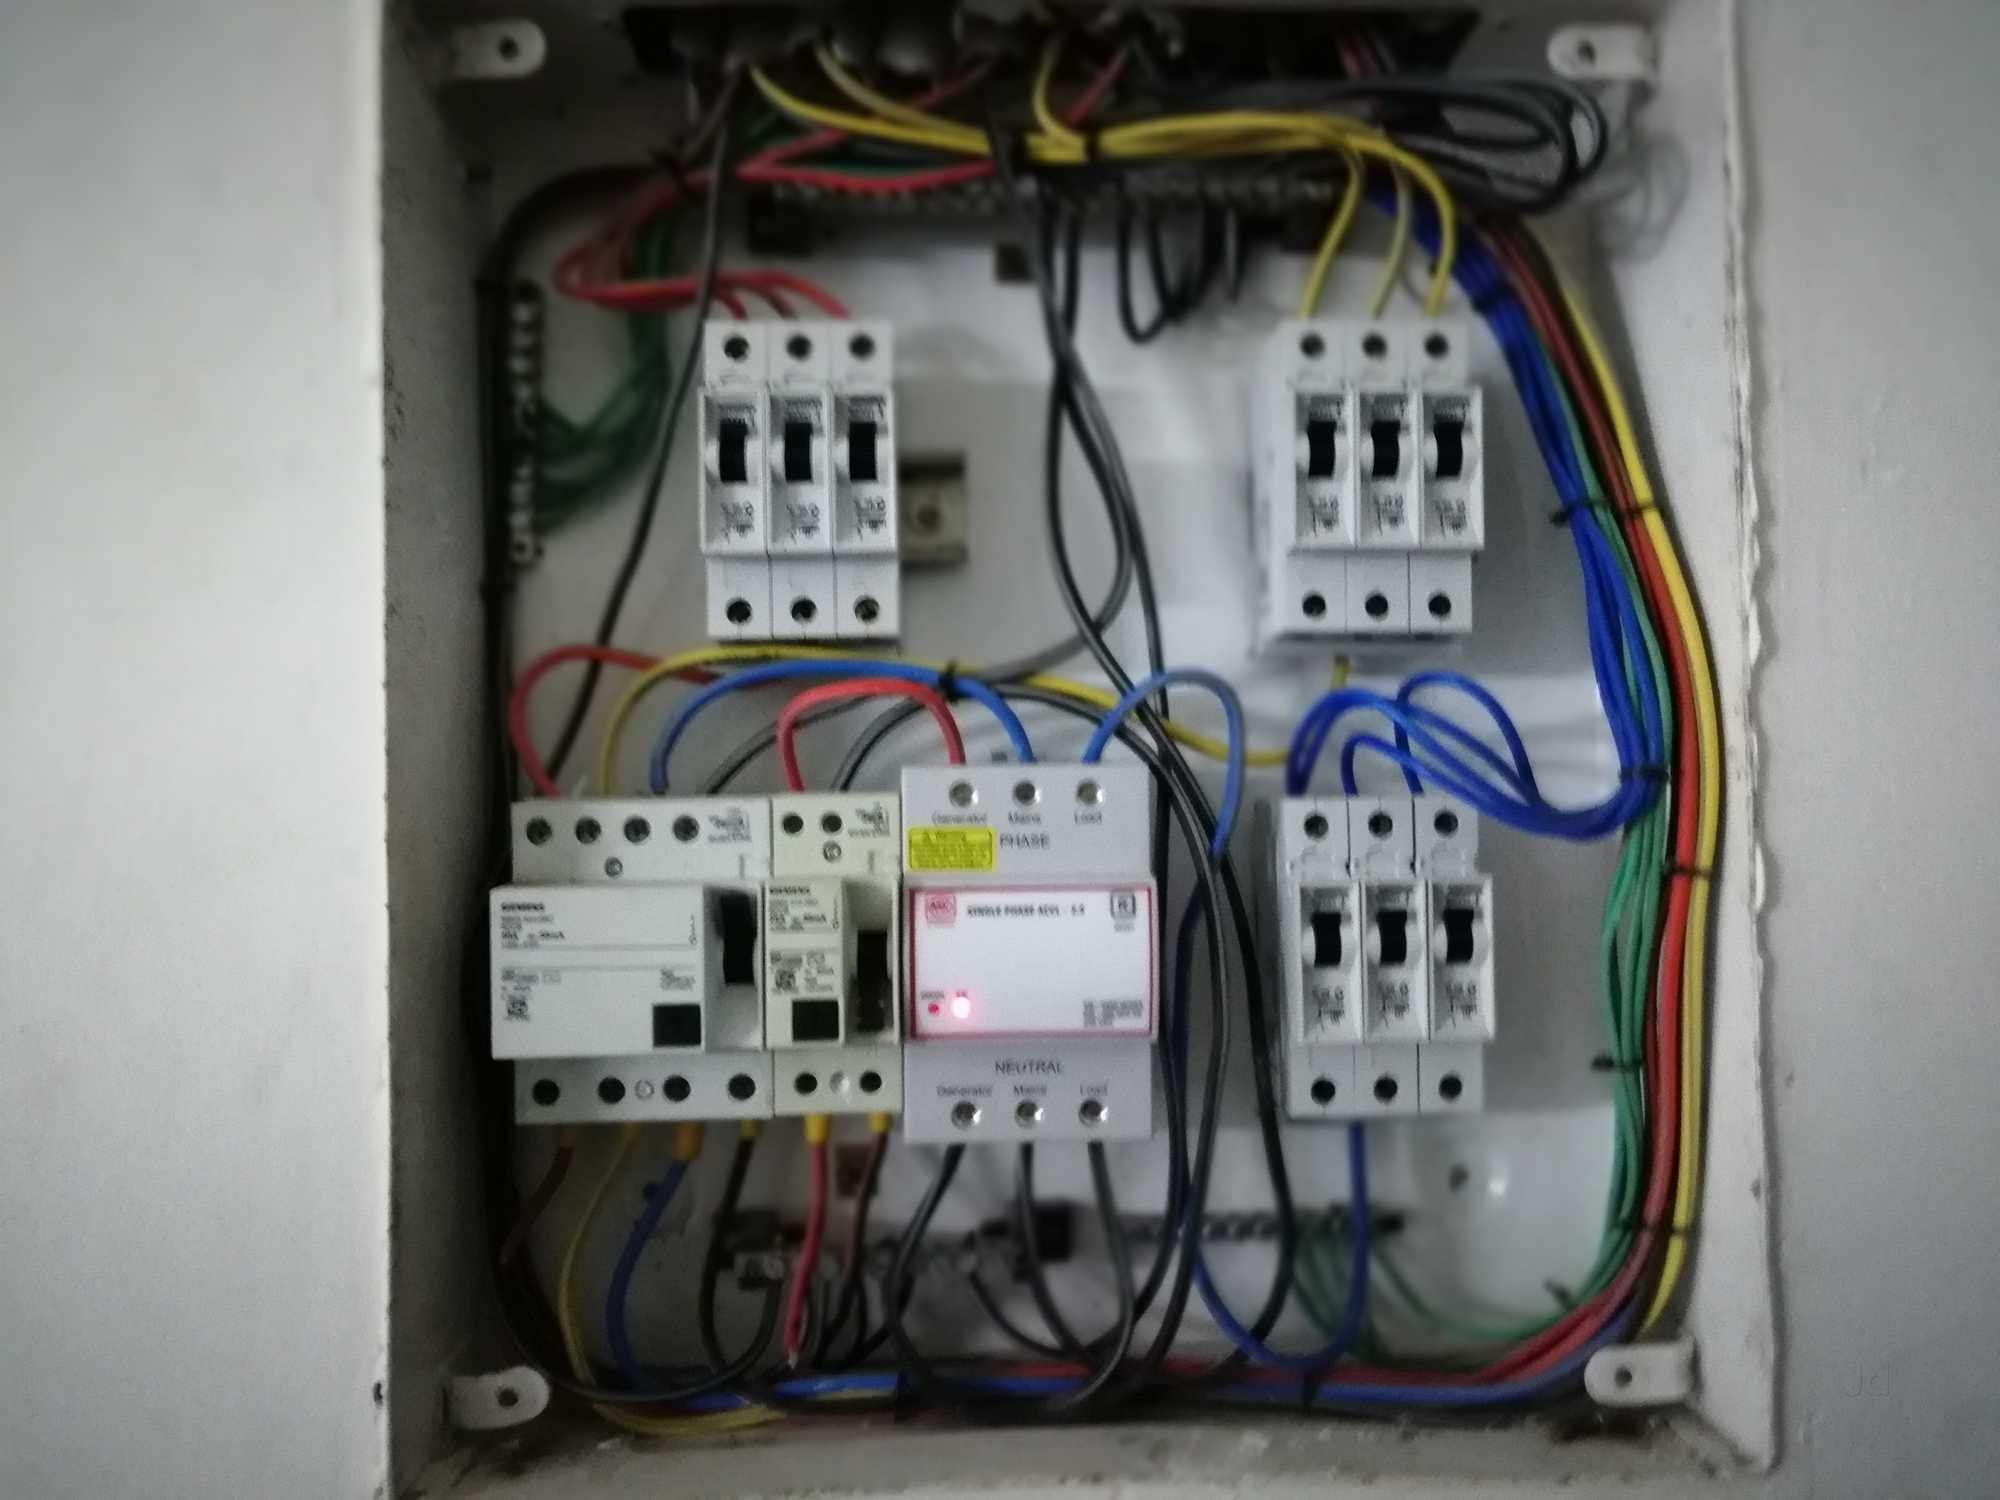 Top Electricians In Pattabiram Chennai Electrical Repair To Reset A Tripped Fuse Circuit Breaker Plumbing Electric